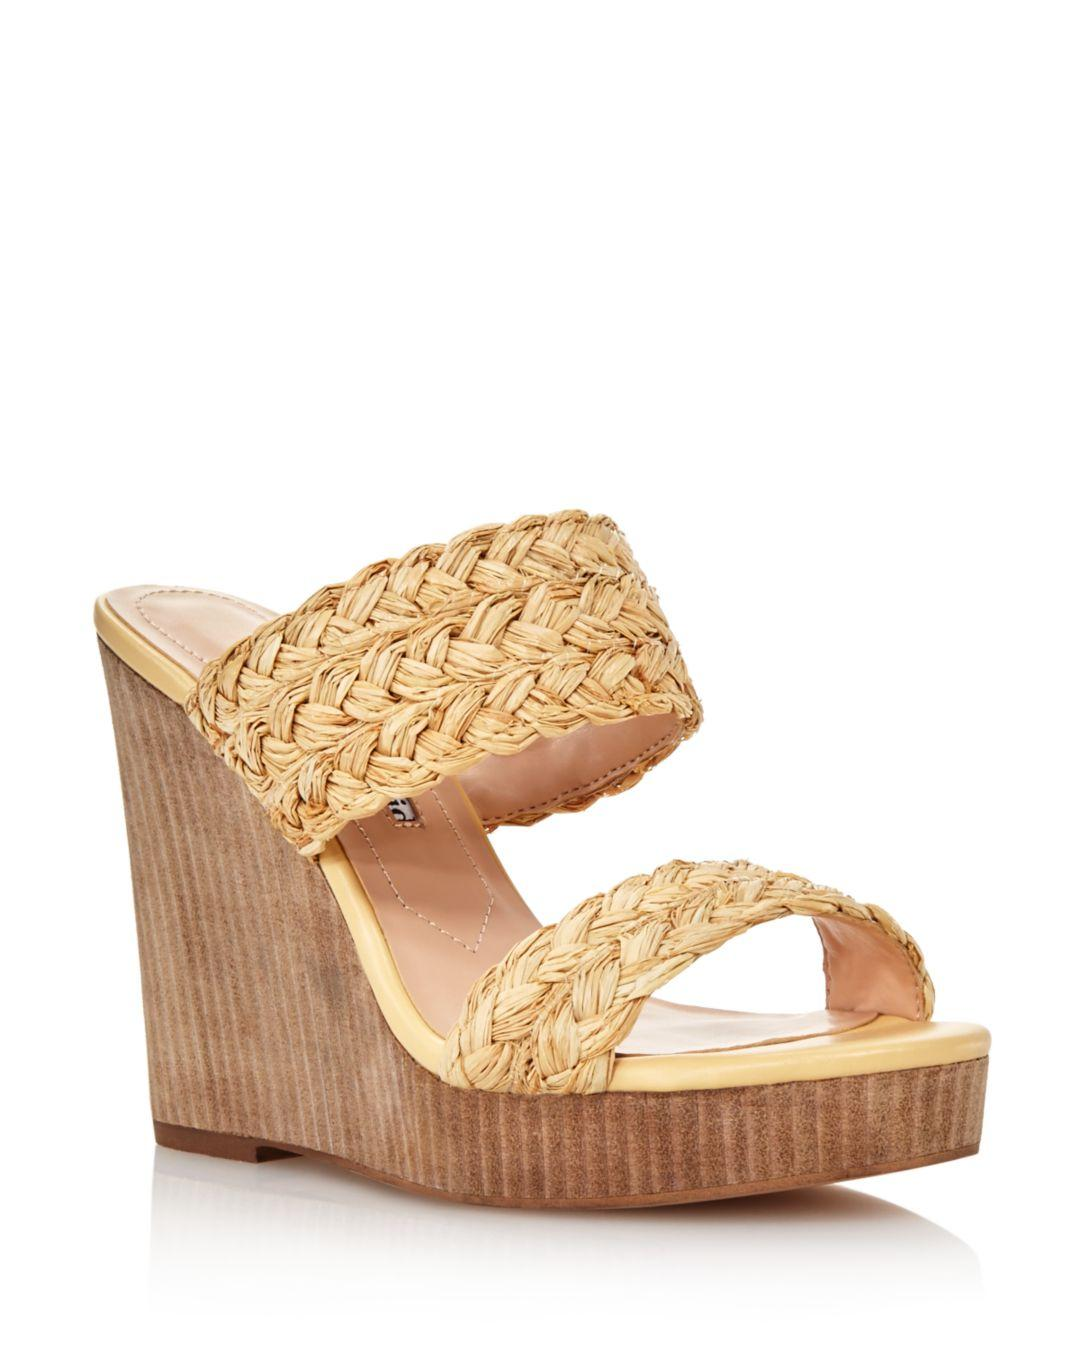 a087cd57e8 Charles David Women's Tifa Raffia Wedge Sandals in Natural - Save 30 ...